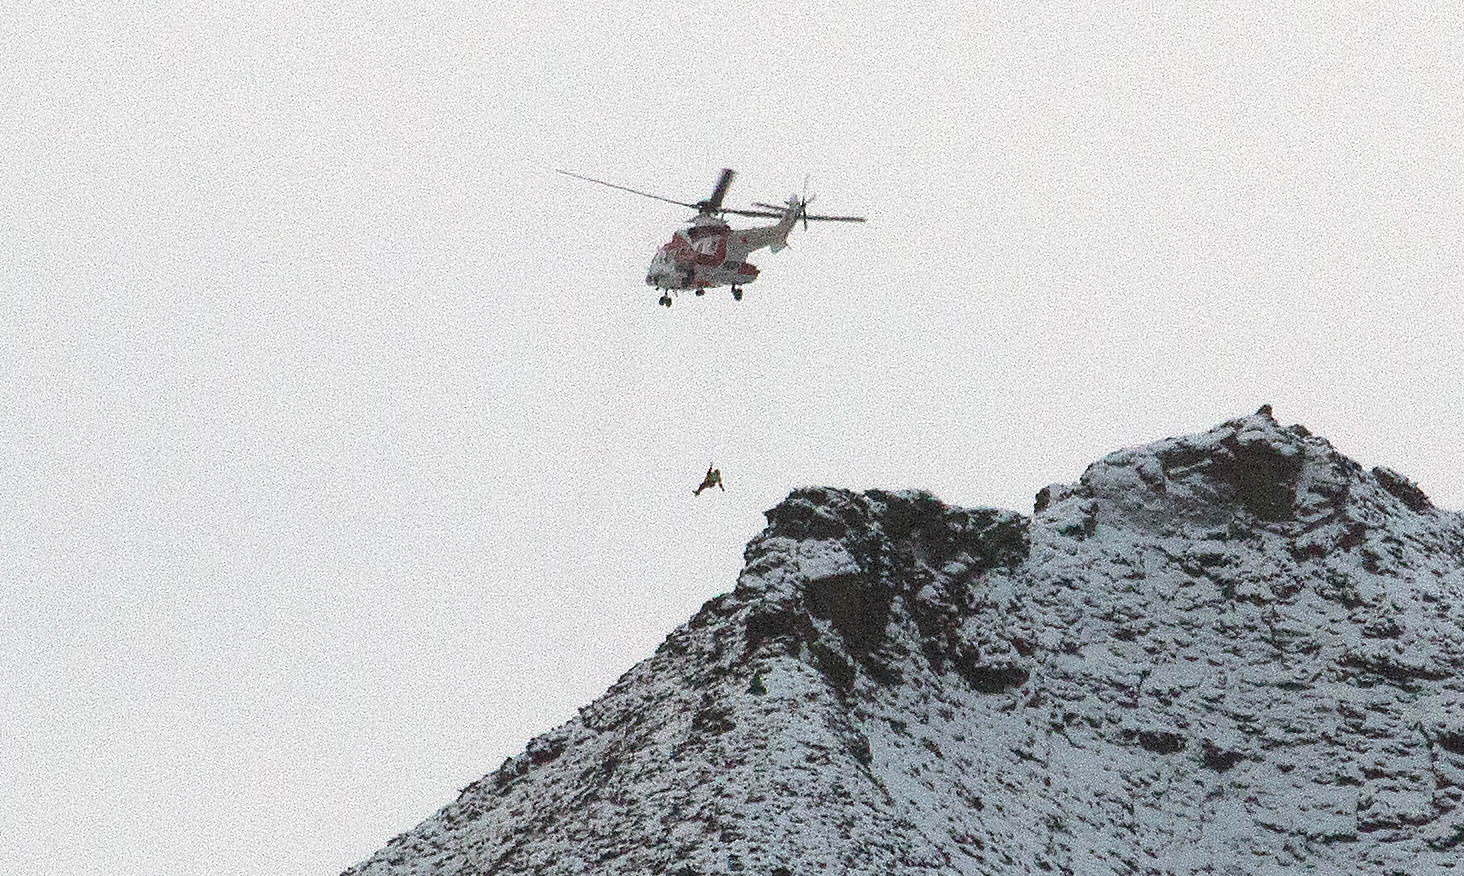 Stuck on Sarkofagen: Two hikers rescued by helicopter after getting trapped on peak